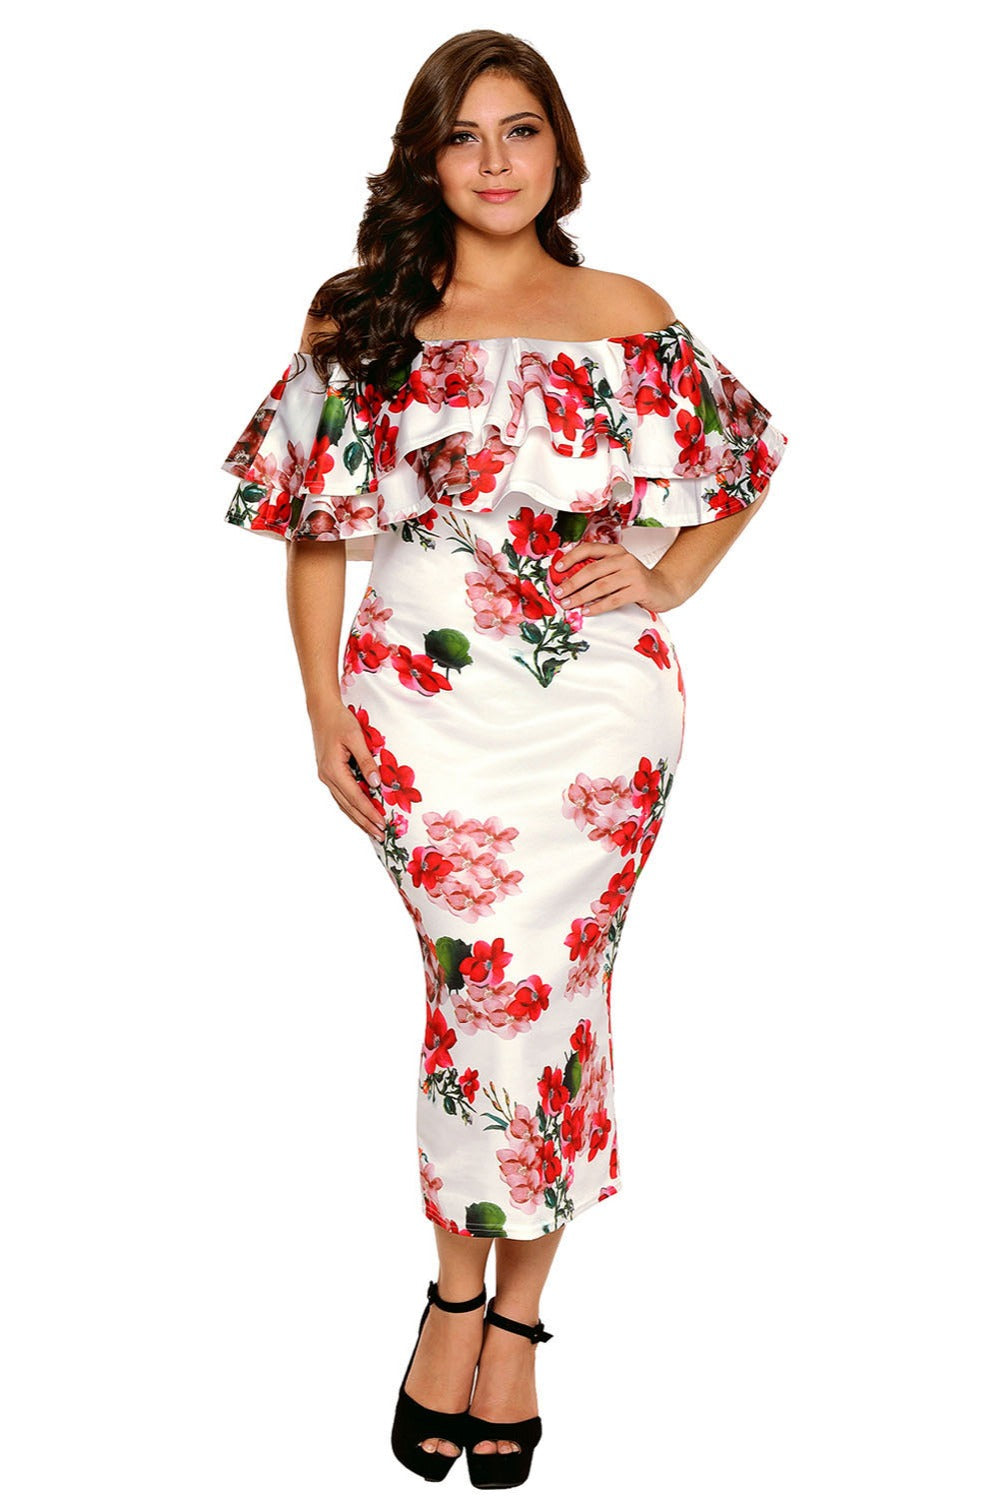 Off Shoulder Summer Ruffle Party Bodycon - Plus Size Fiesta Party Dress Dresses - Woven Trends Fashion Collection